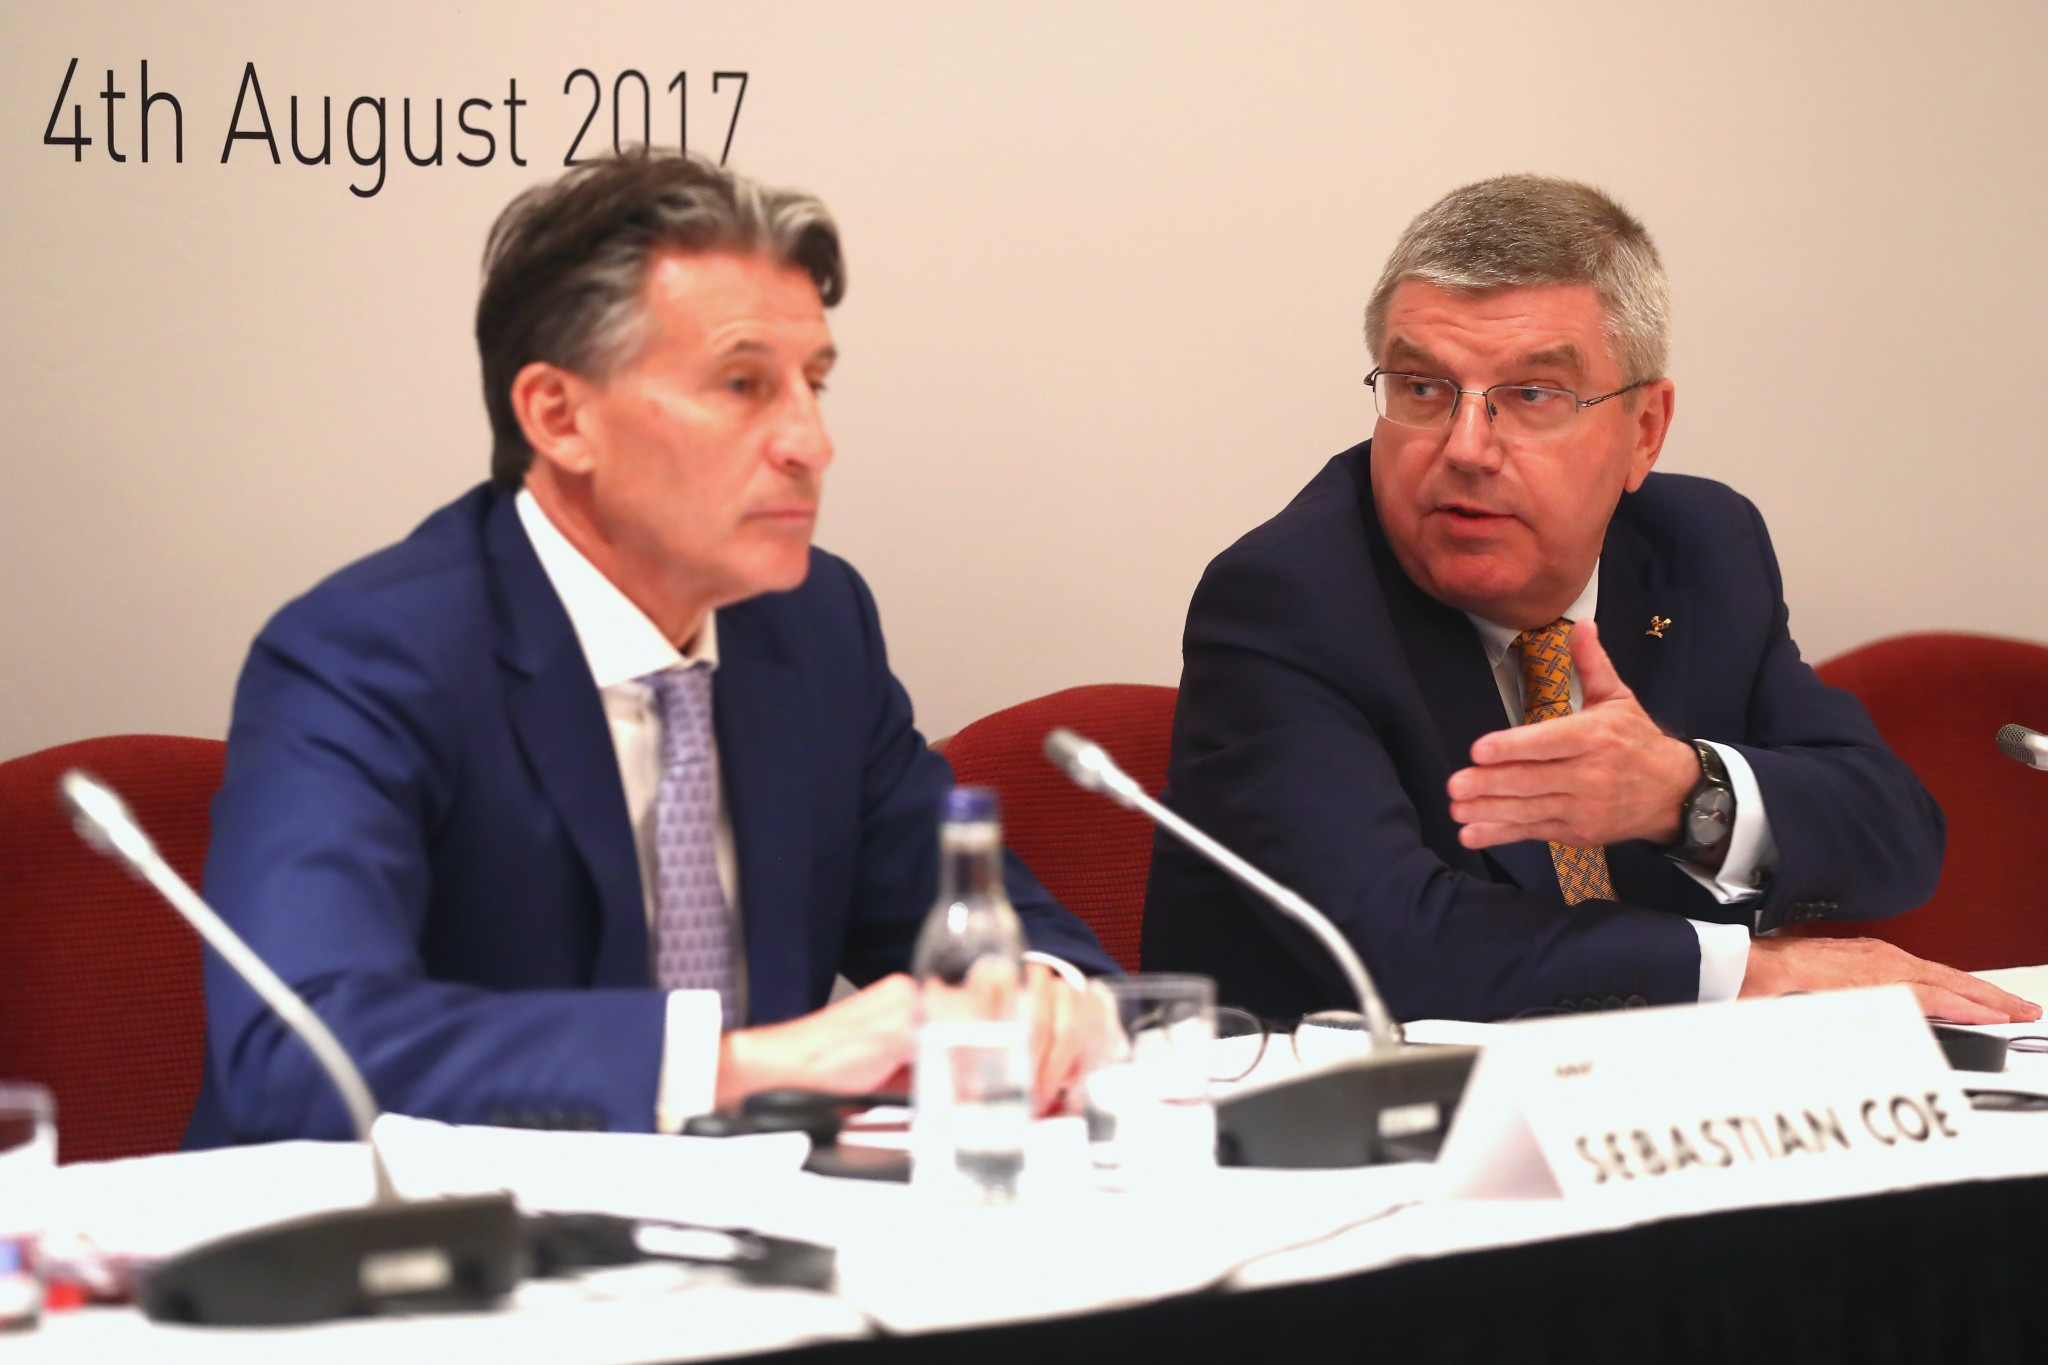 Sebastian Coe, left, and Thomas Bach claim to have discussed the issue of IOC membership ©Getty Images